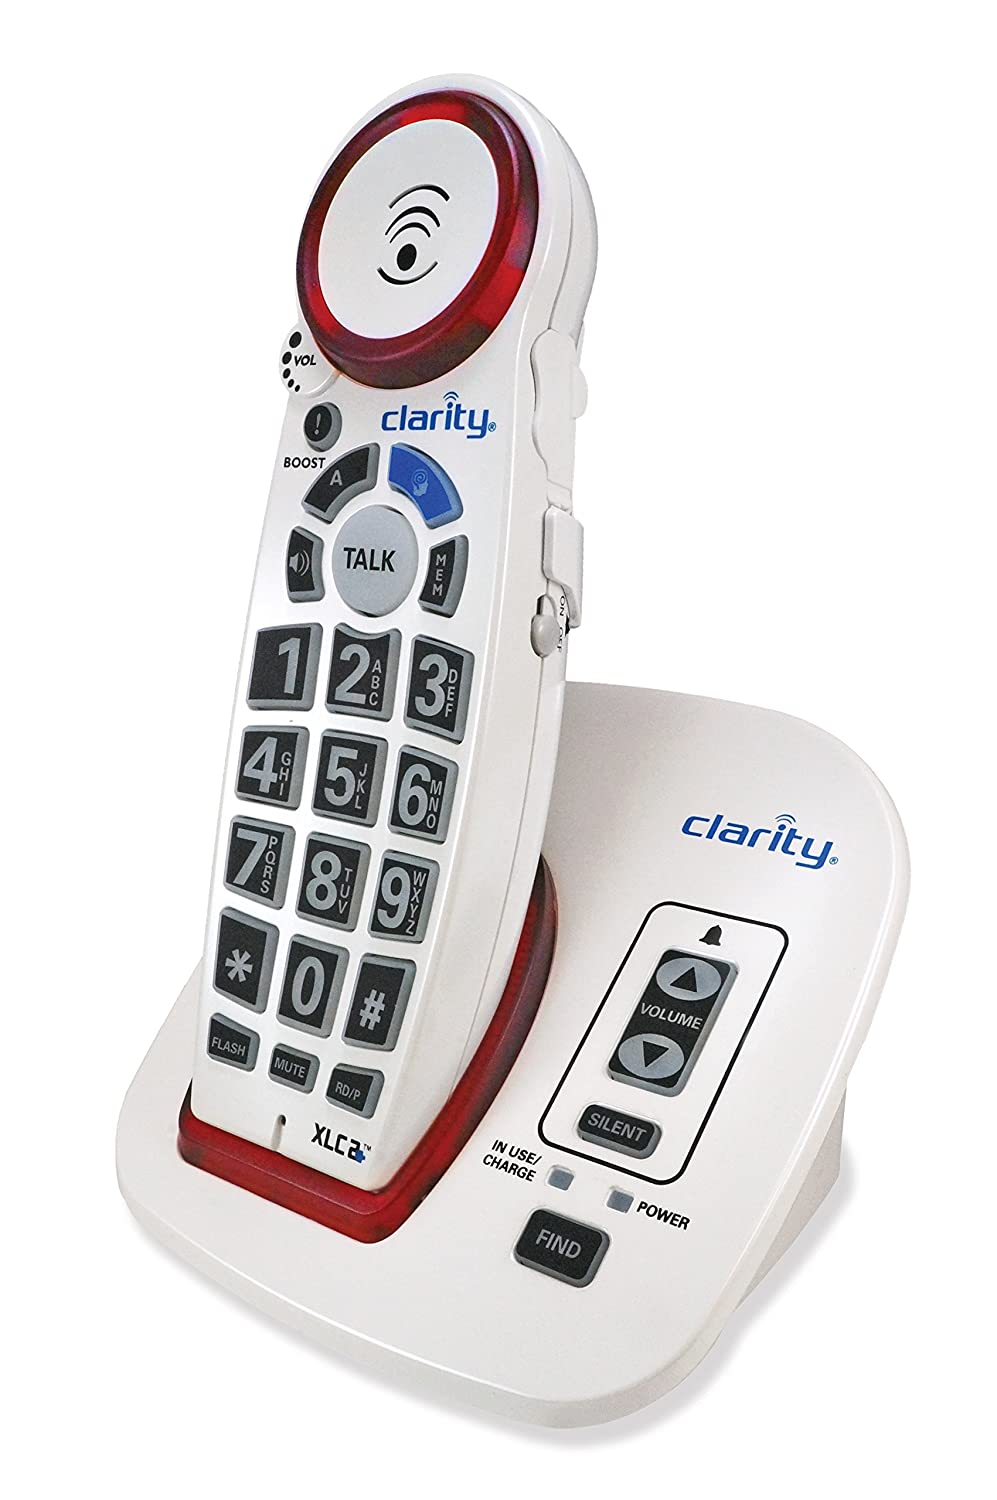 Clarity DECT 6.0 Amplified Big-Button Speakerphone with Talking Caller ID - 59522.000999999997